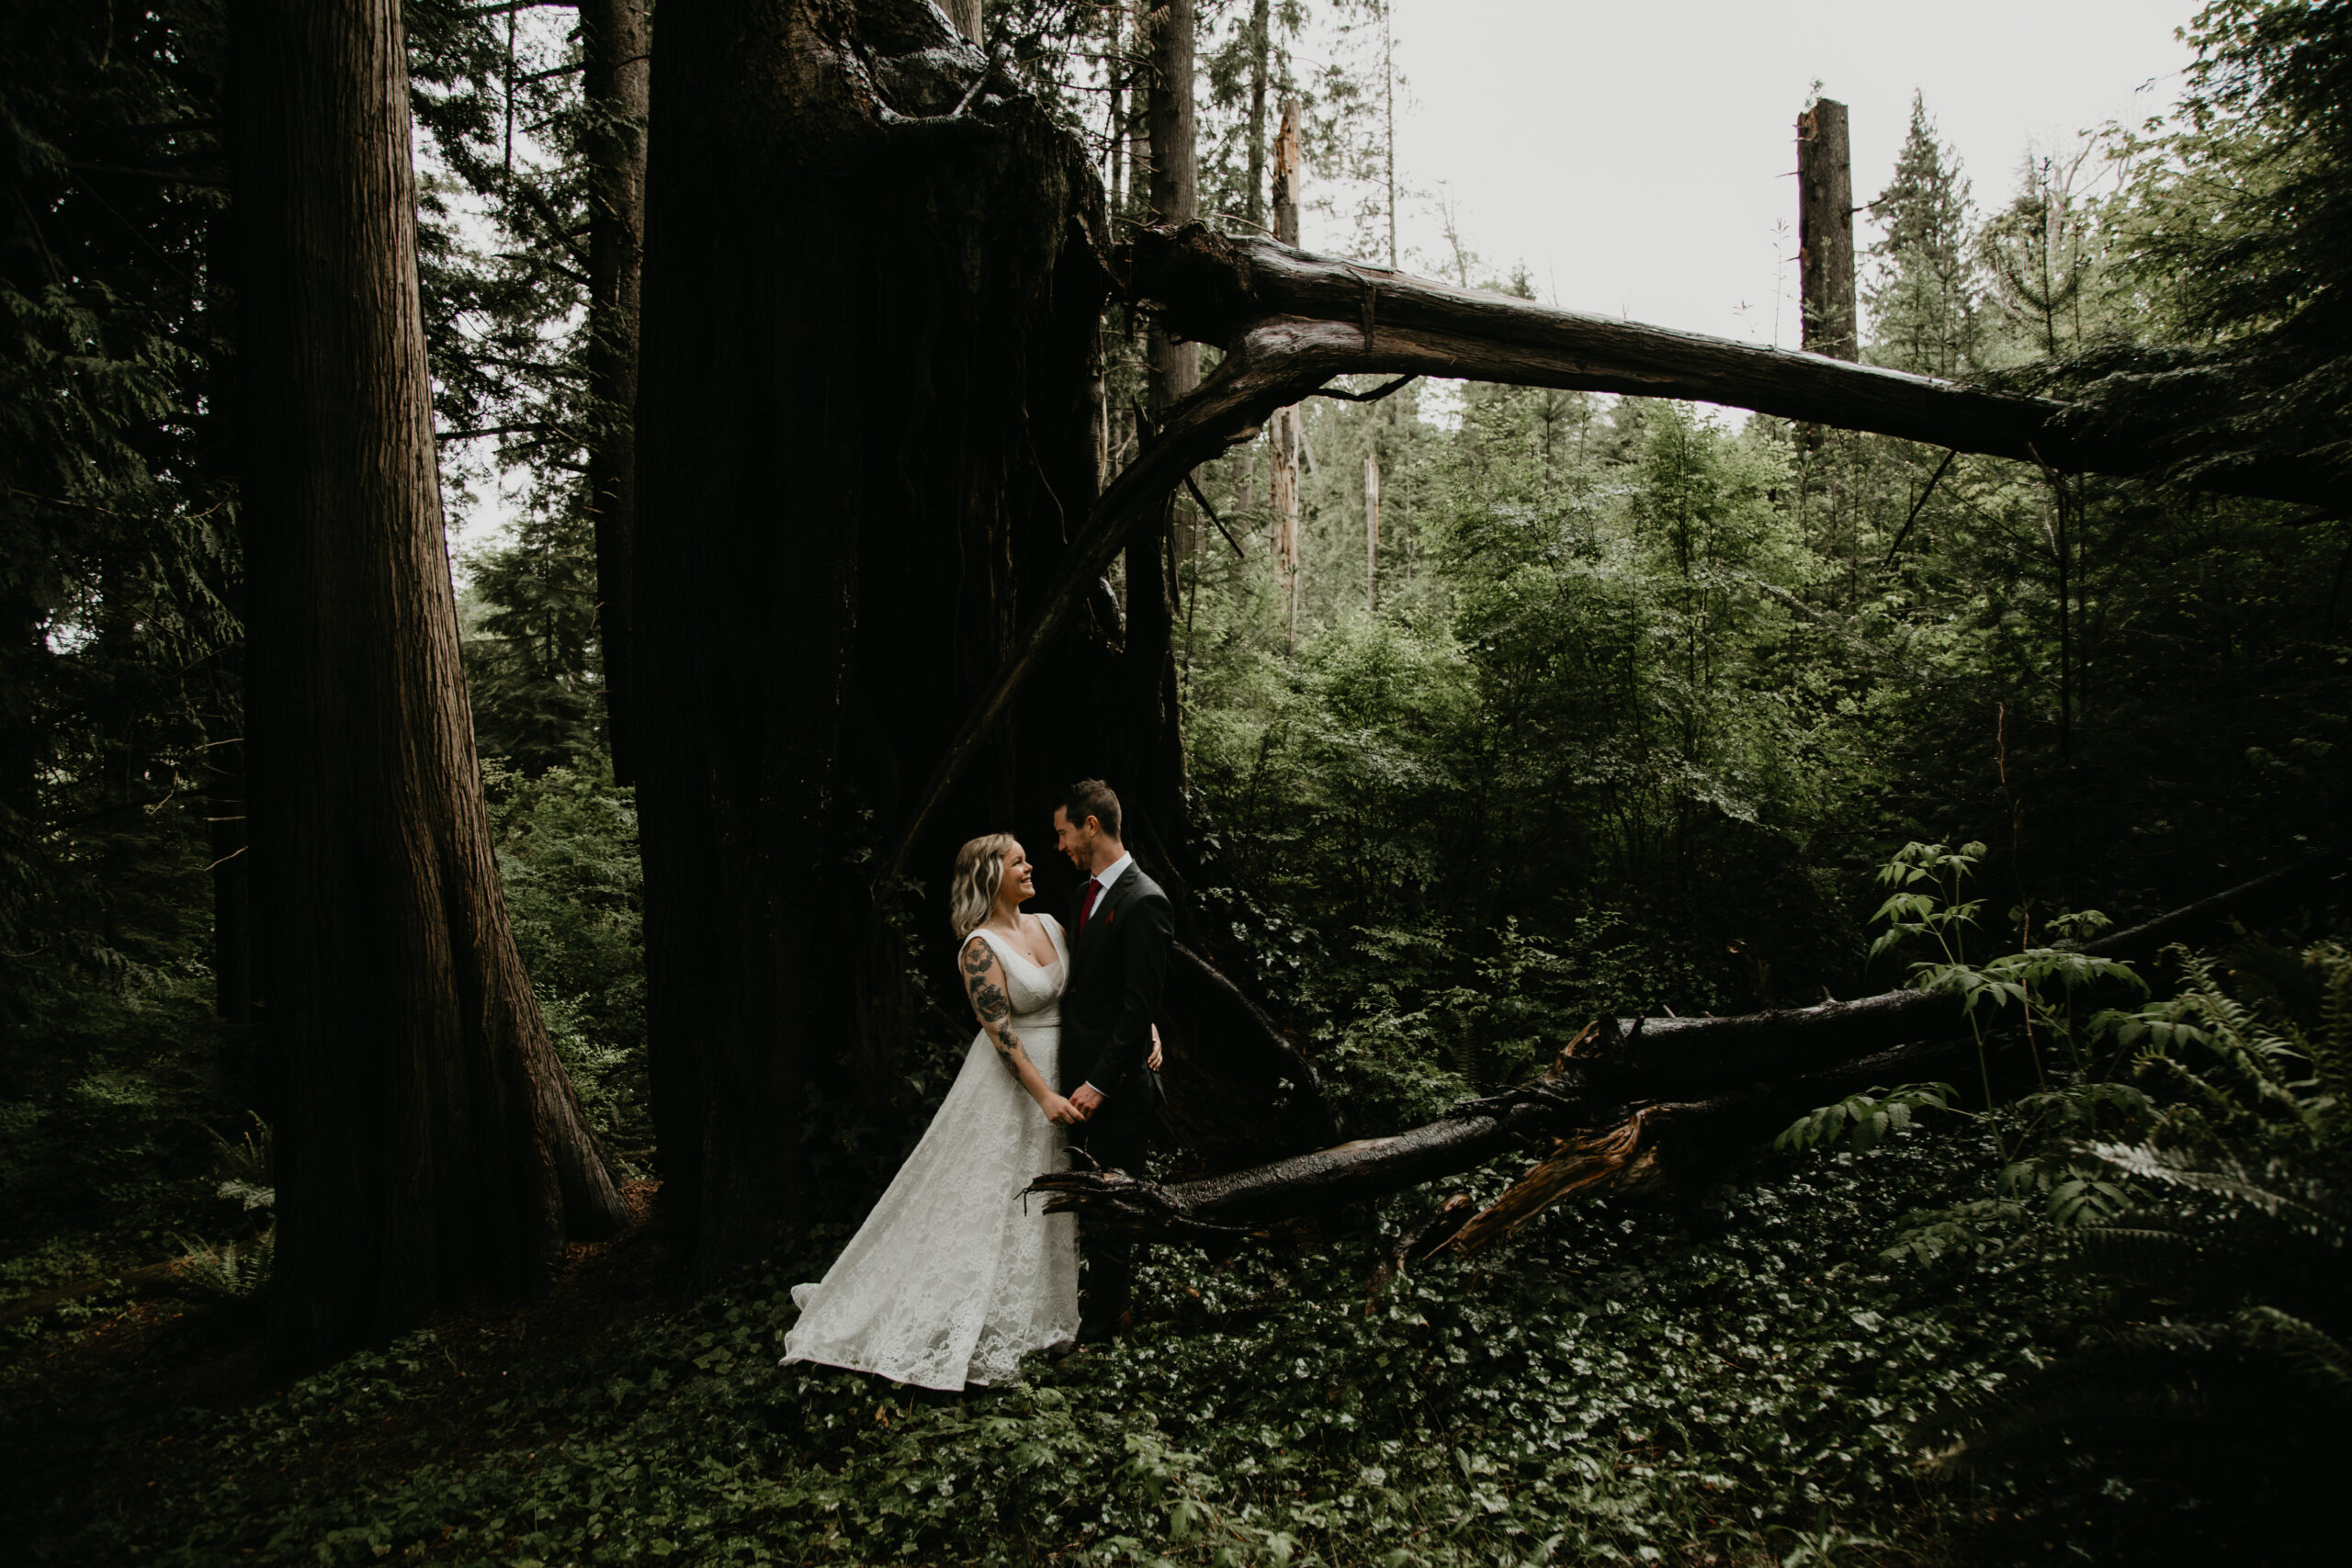 Elope at Cates Park with Young Hip & Married Vancouver officiants and marriage commissioners